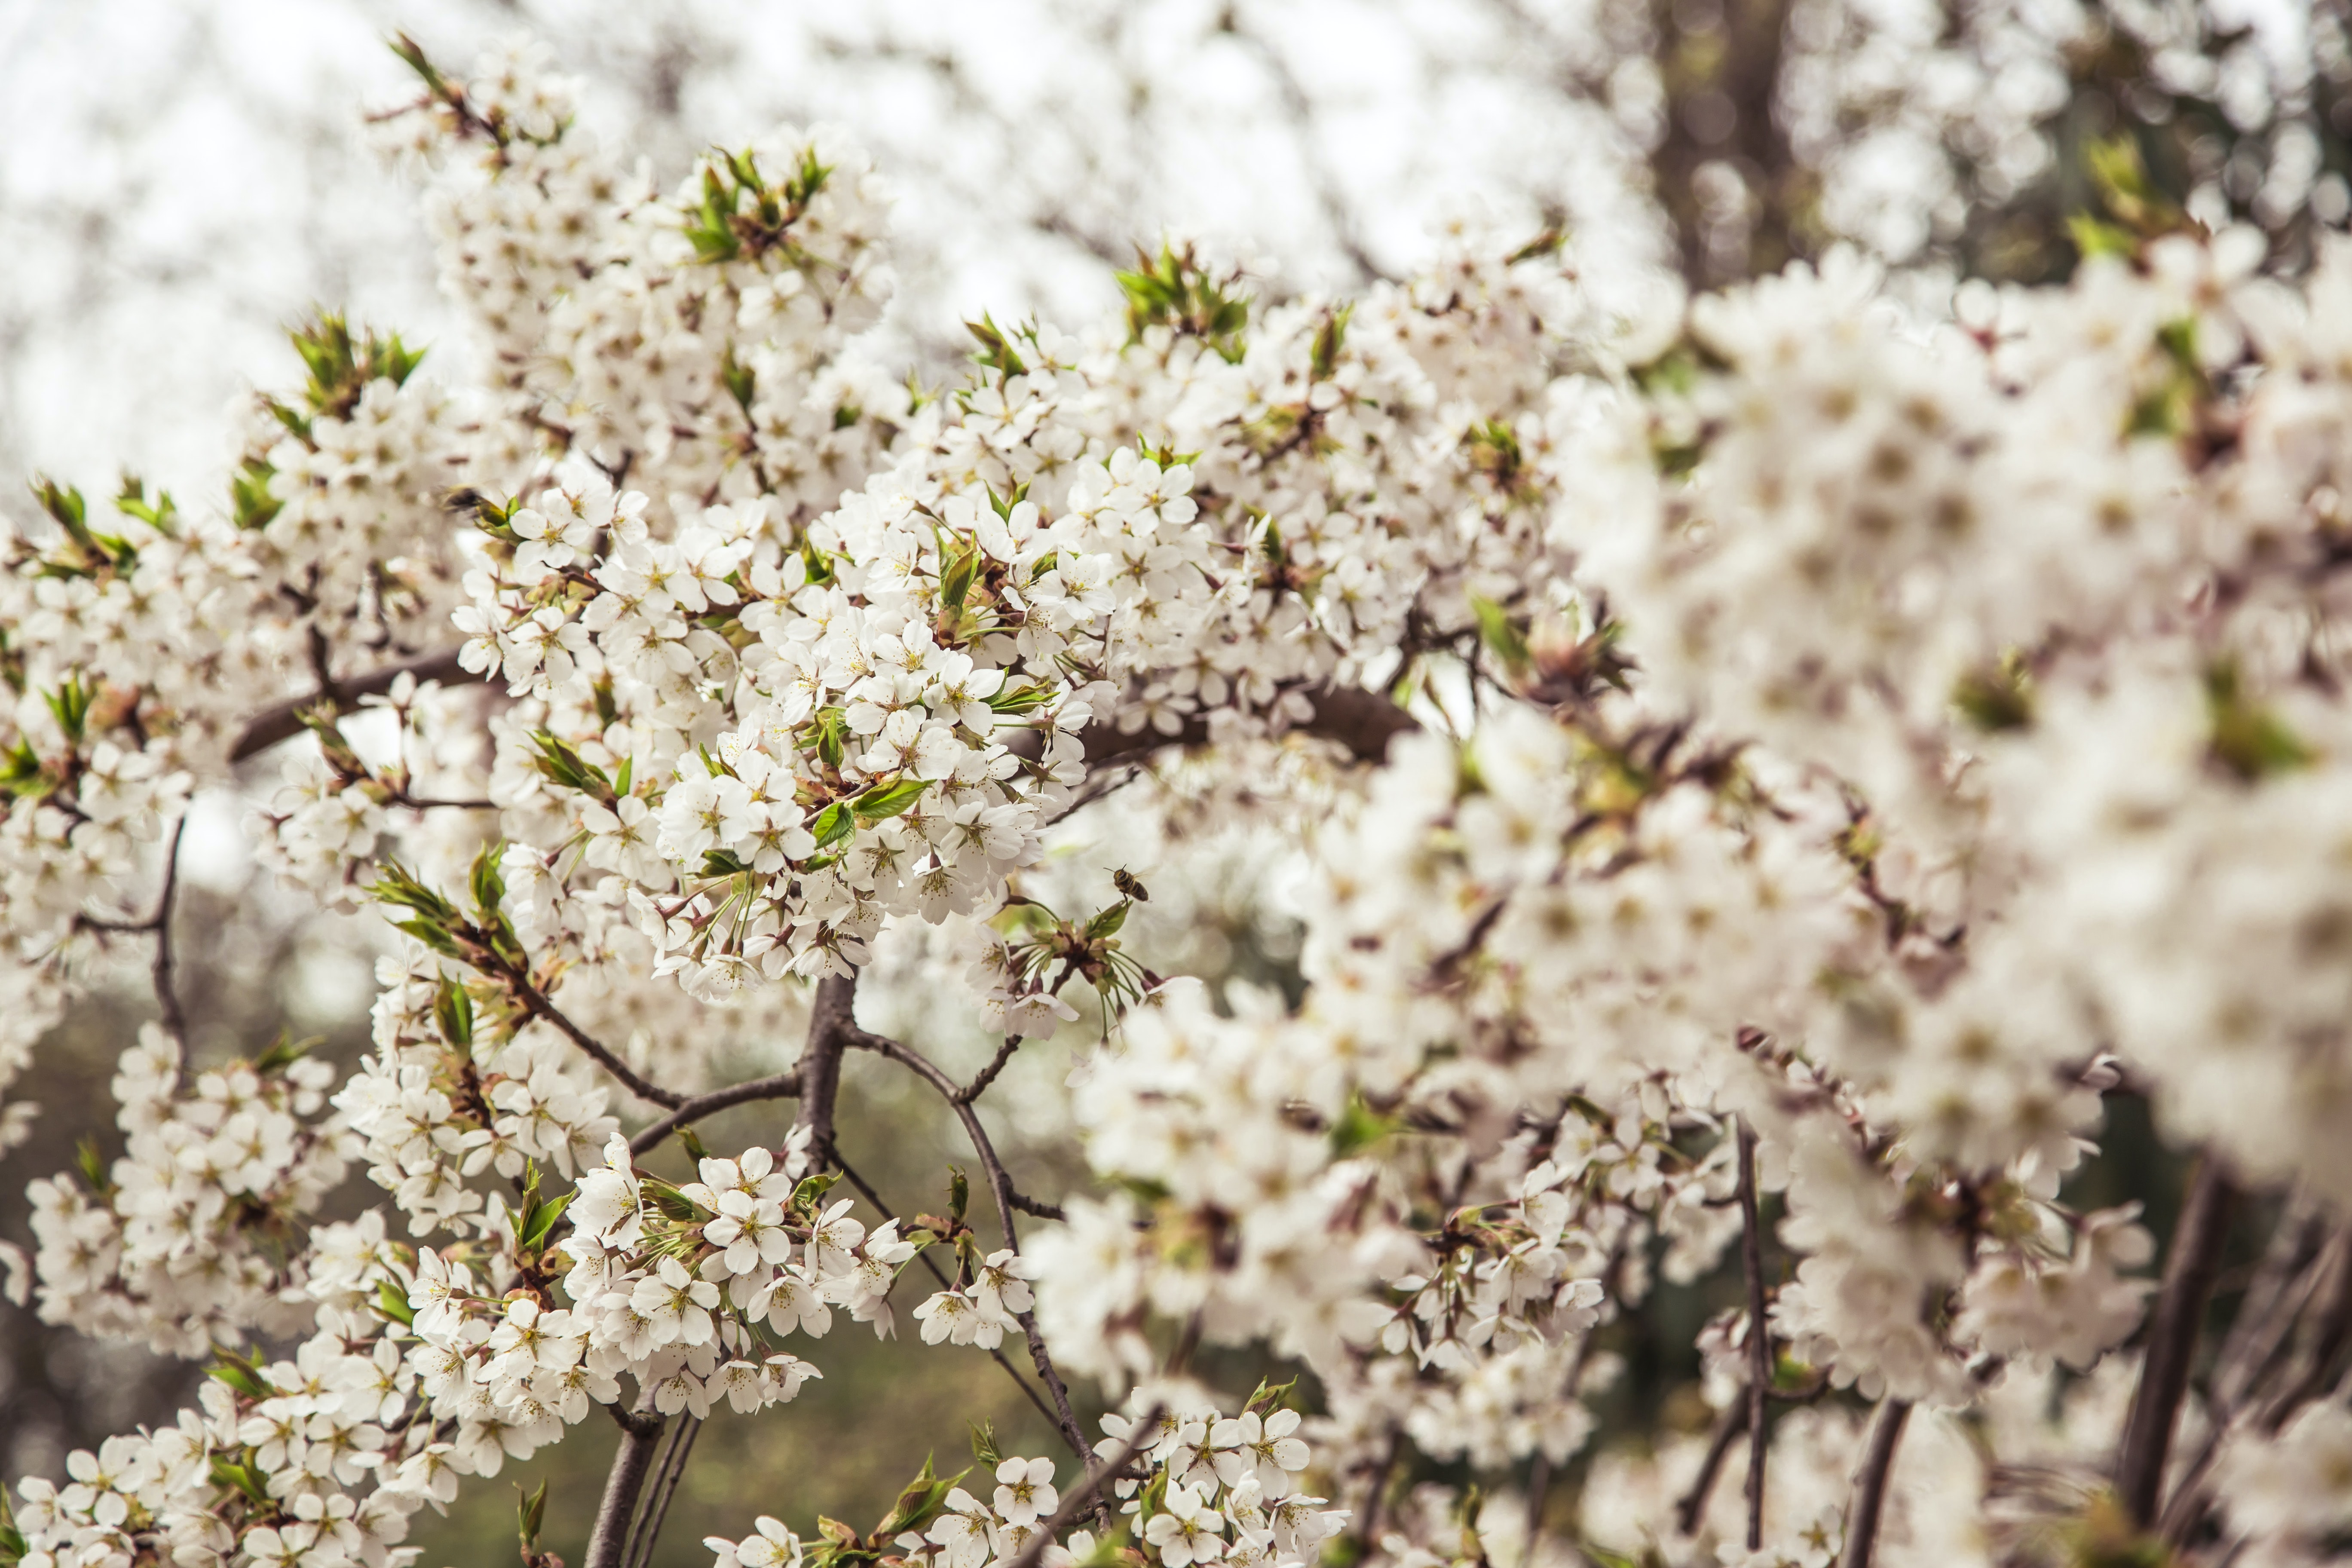 White blossom covering the branches of a tree